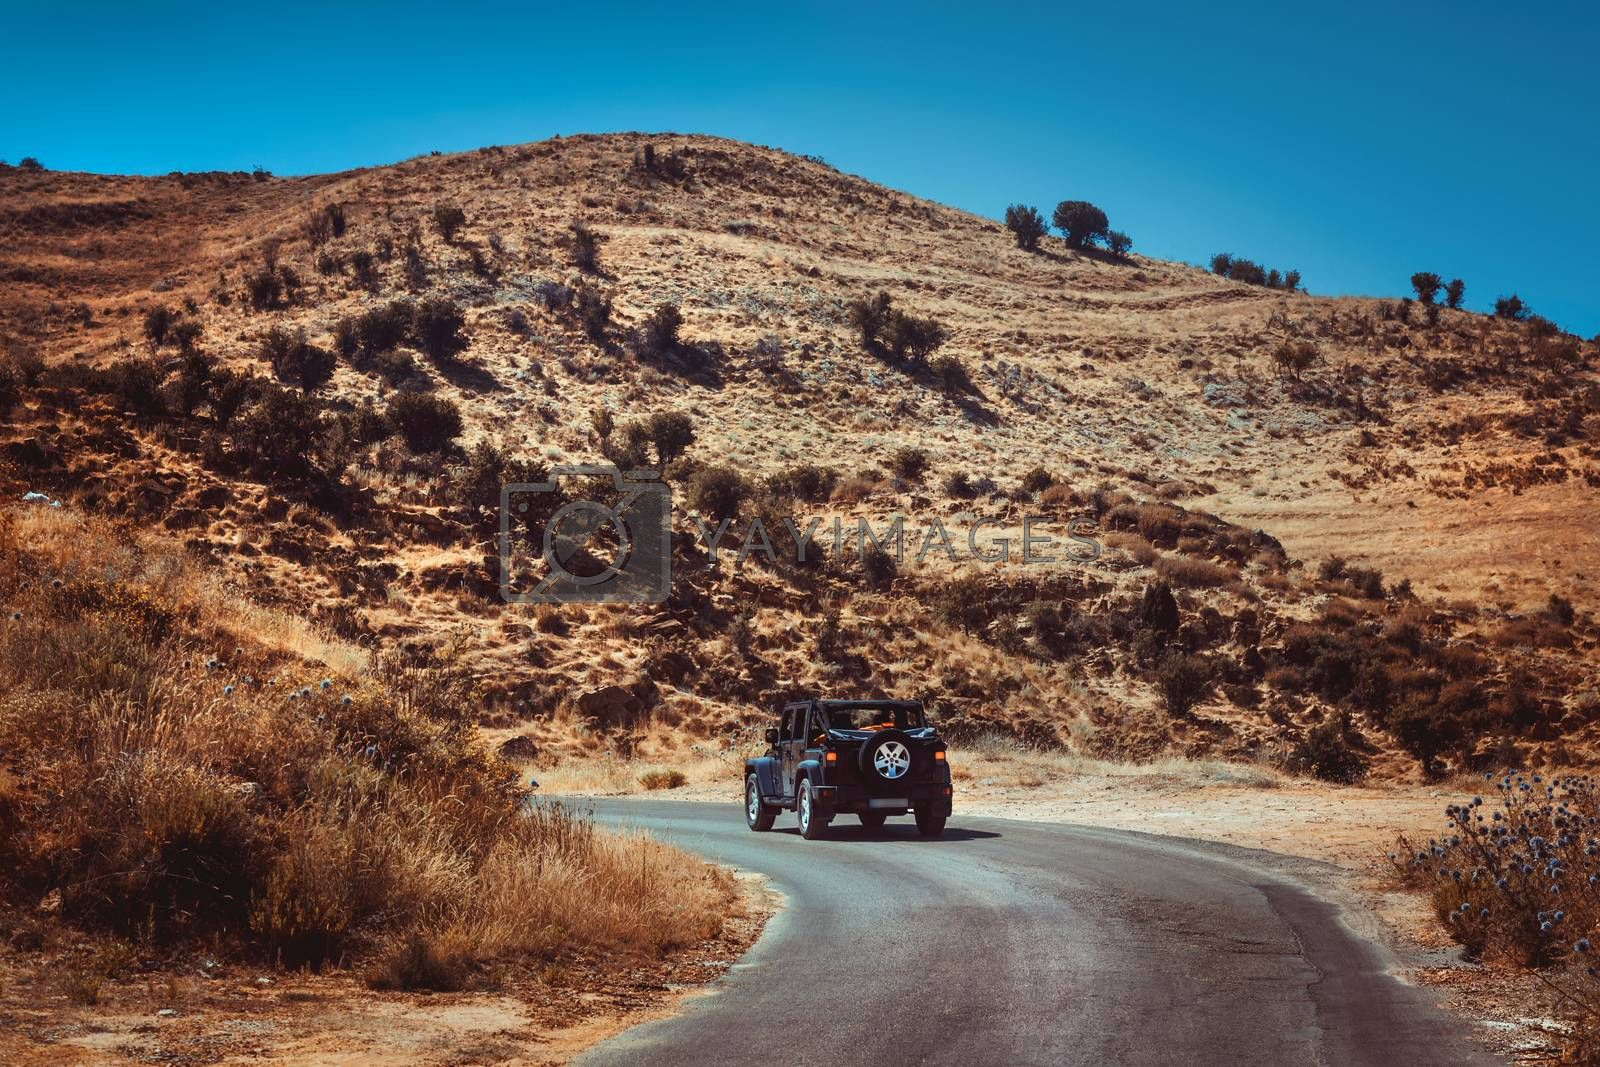 Traveling In the Big Comfortable Jeep along Mountainous roads of Lebanon. Beautiful Wild Mountains. Picturesque View. Active Summer Vacation.